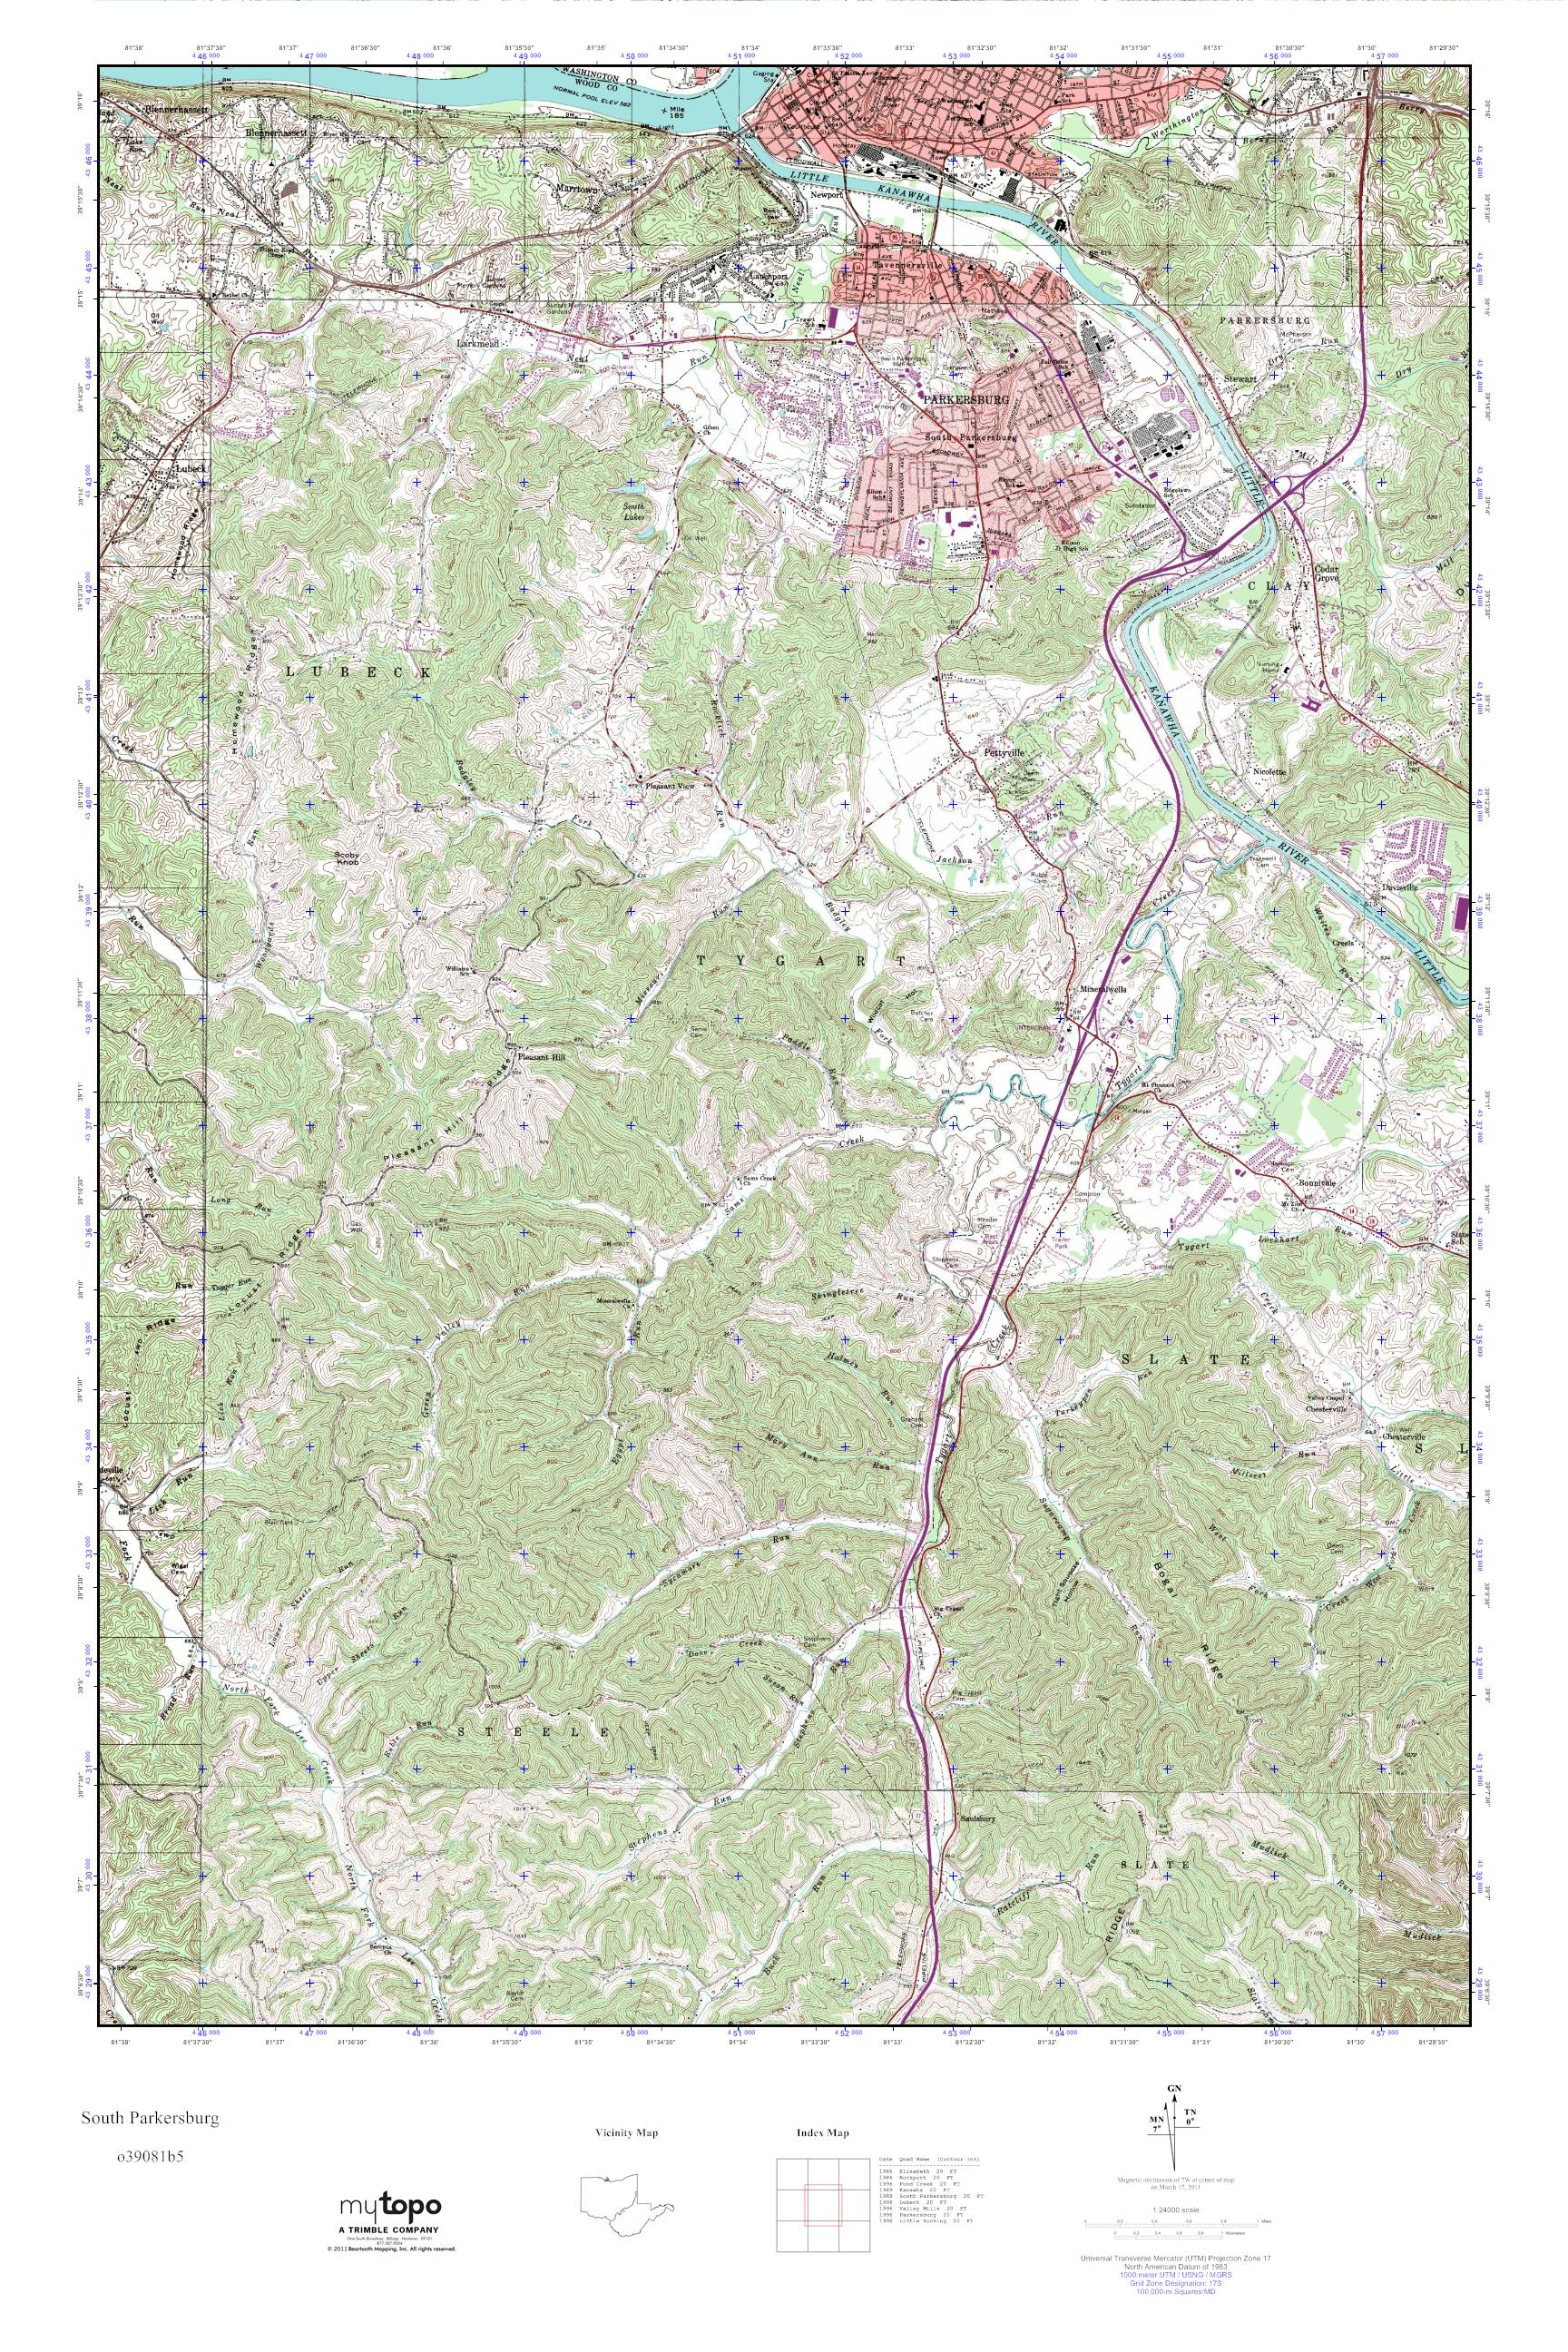 Parkersburg West Virginia Map.Mytopo South Parkersburg West Virginia Usgs Quad Topo Map